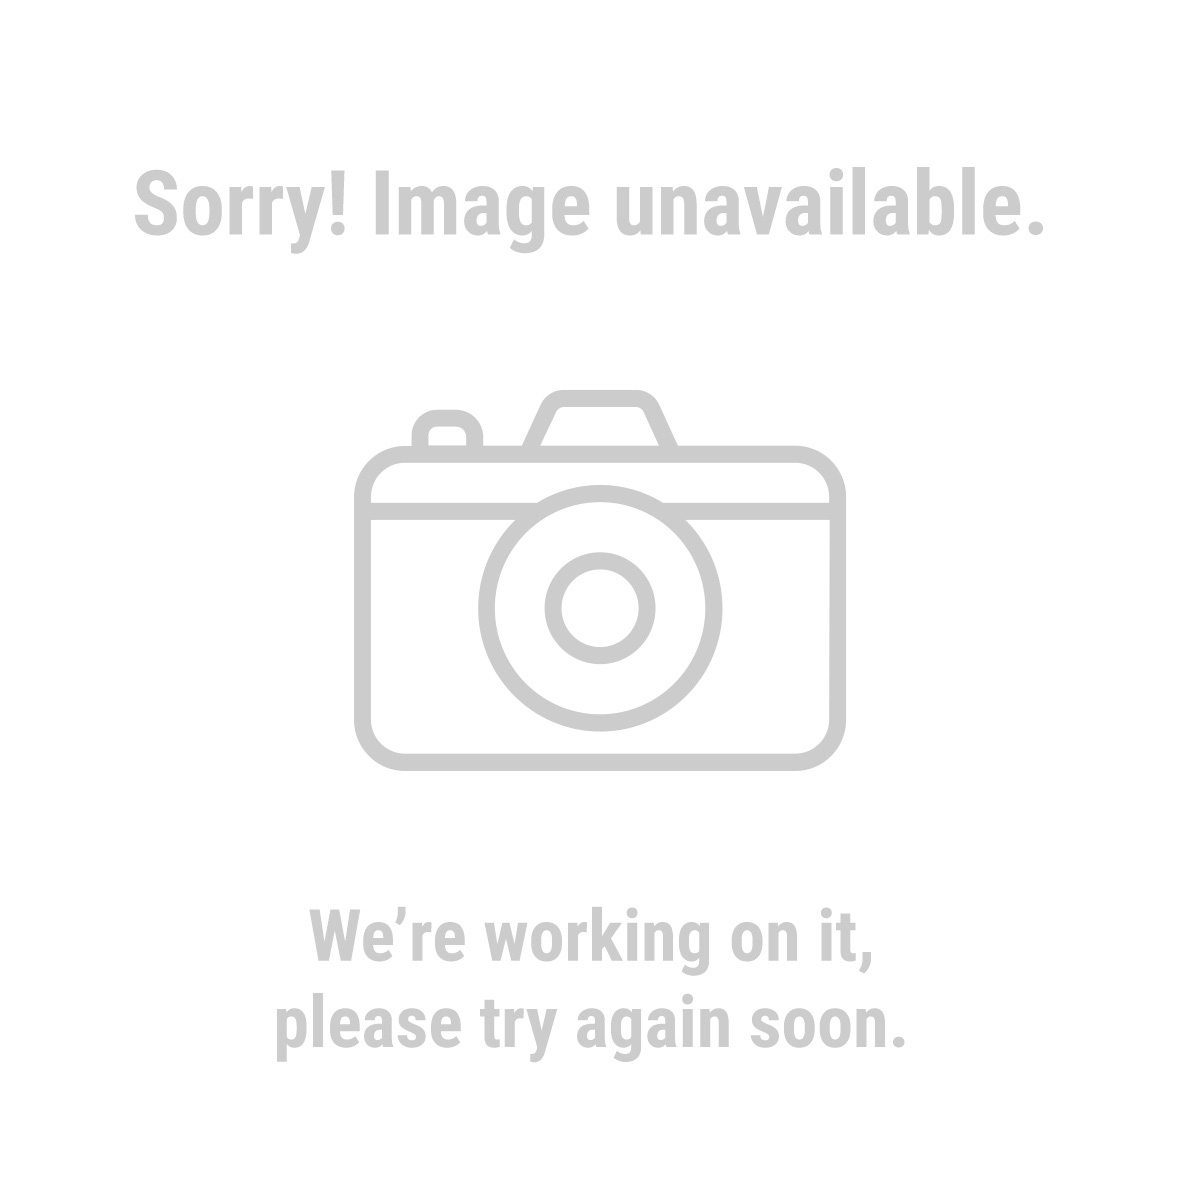 Goof-Off 97555 16 Oz. Goof Off